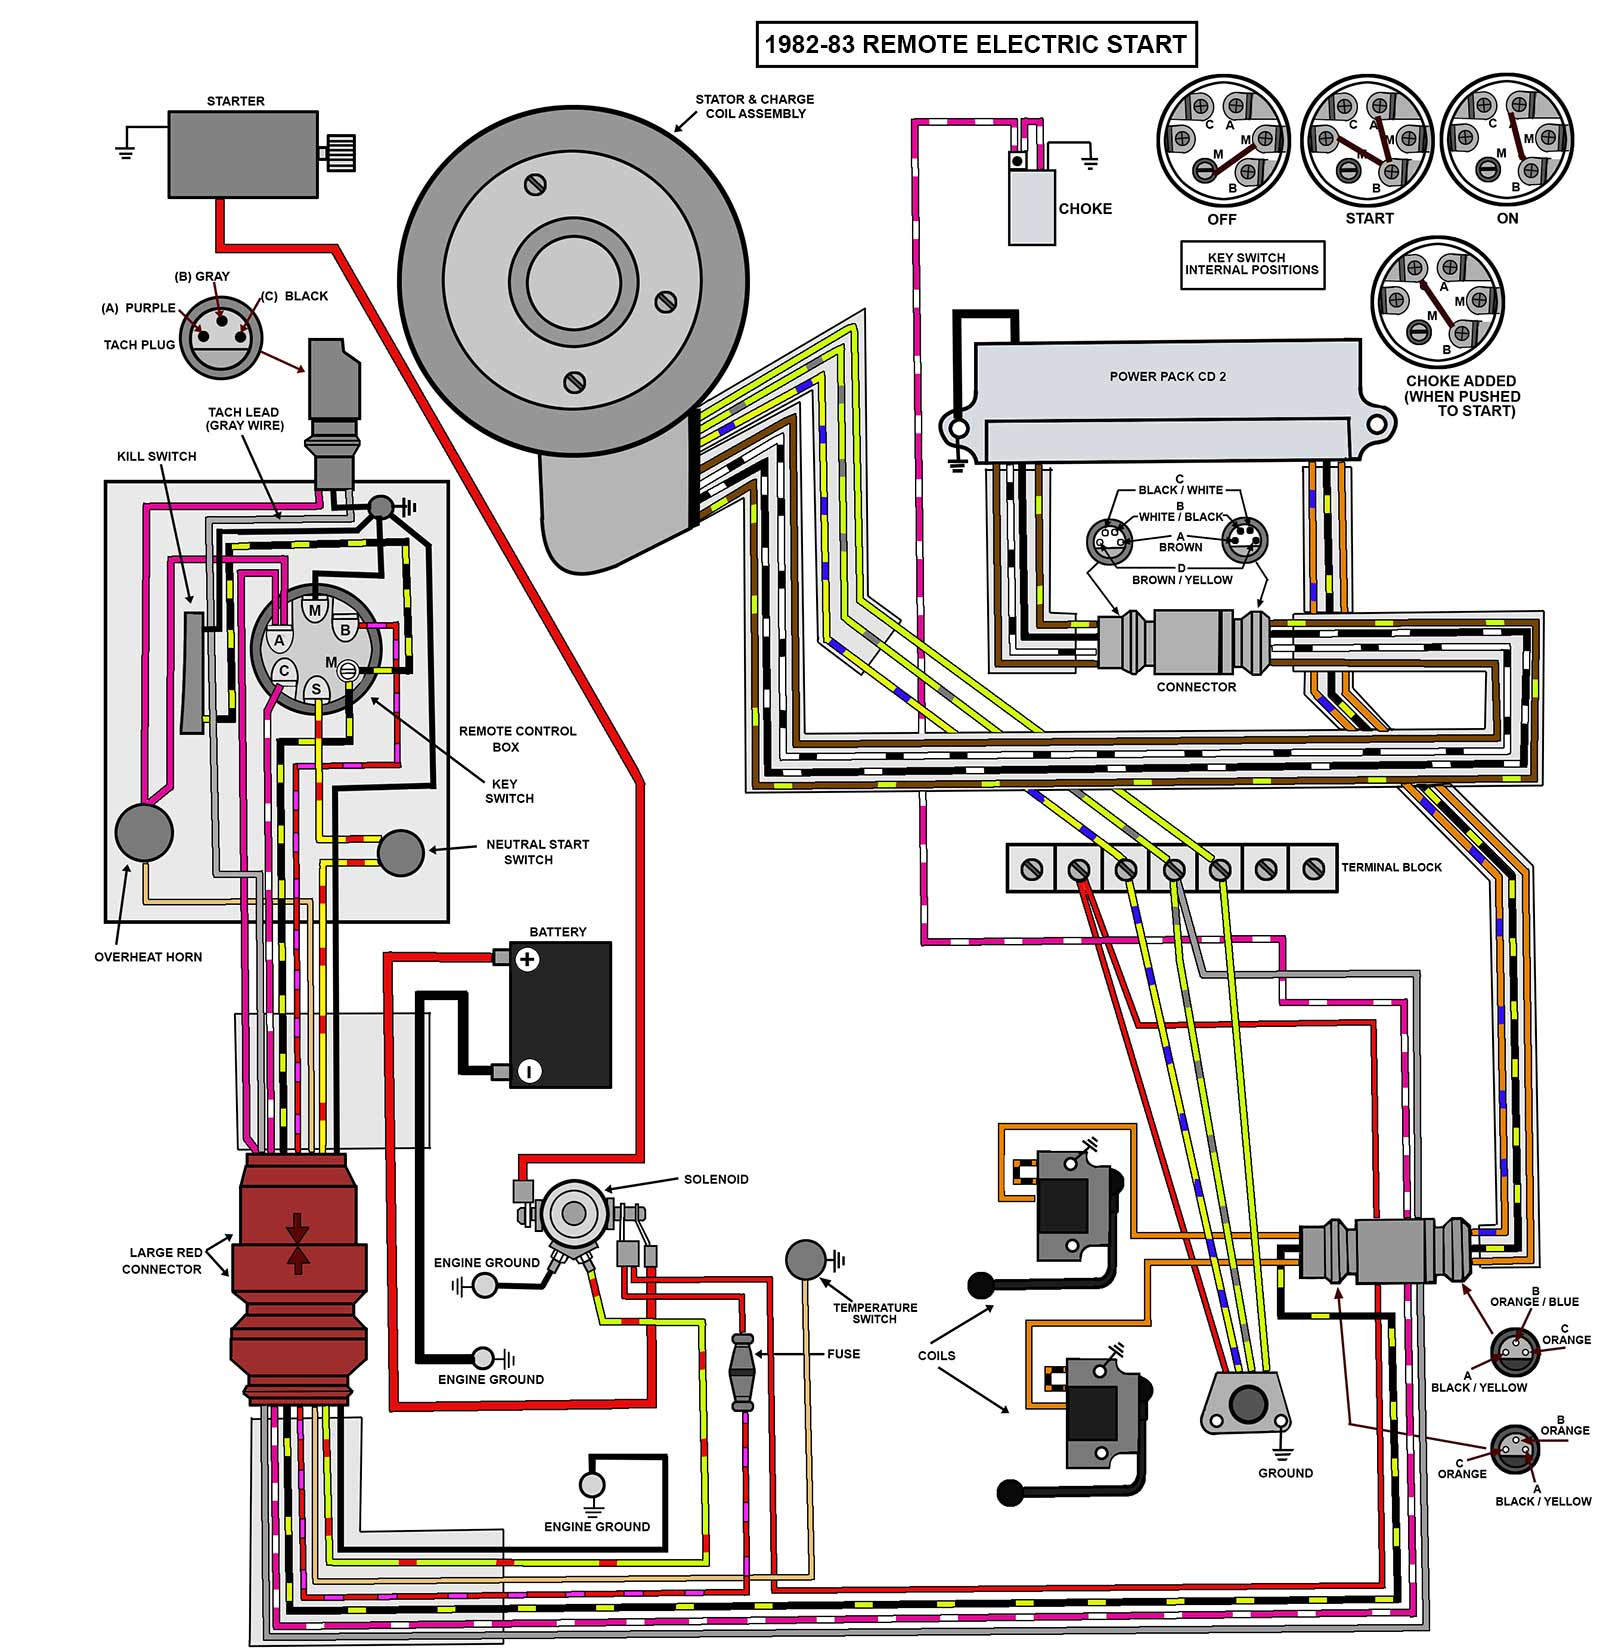 wiring diagram for 110 230 motor wiring diagram for omc outboard motor evinrude johnson outboard wiring diagrams -- mastertech ...